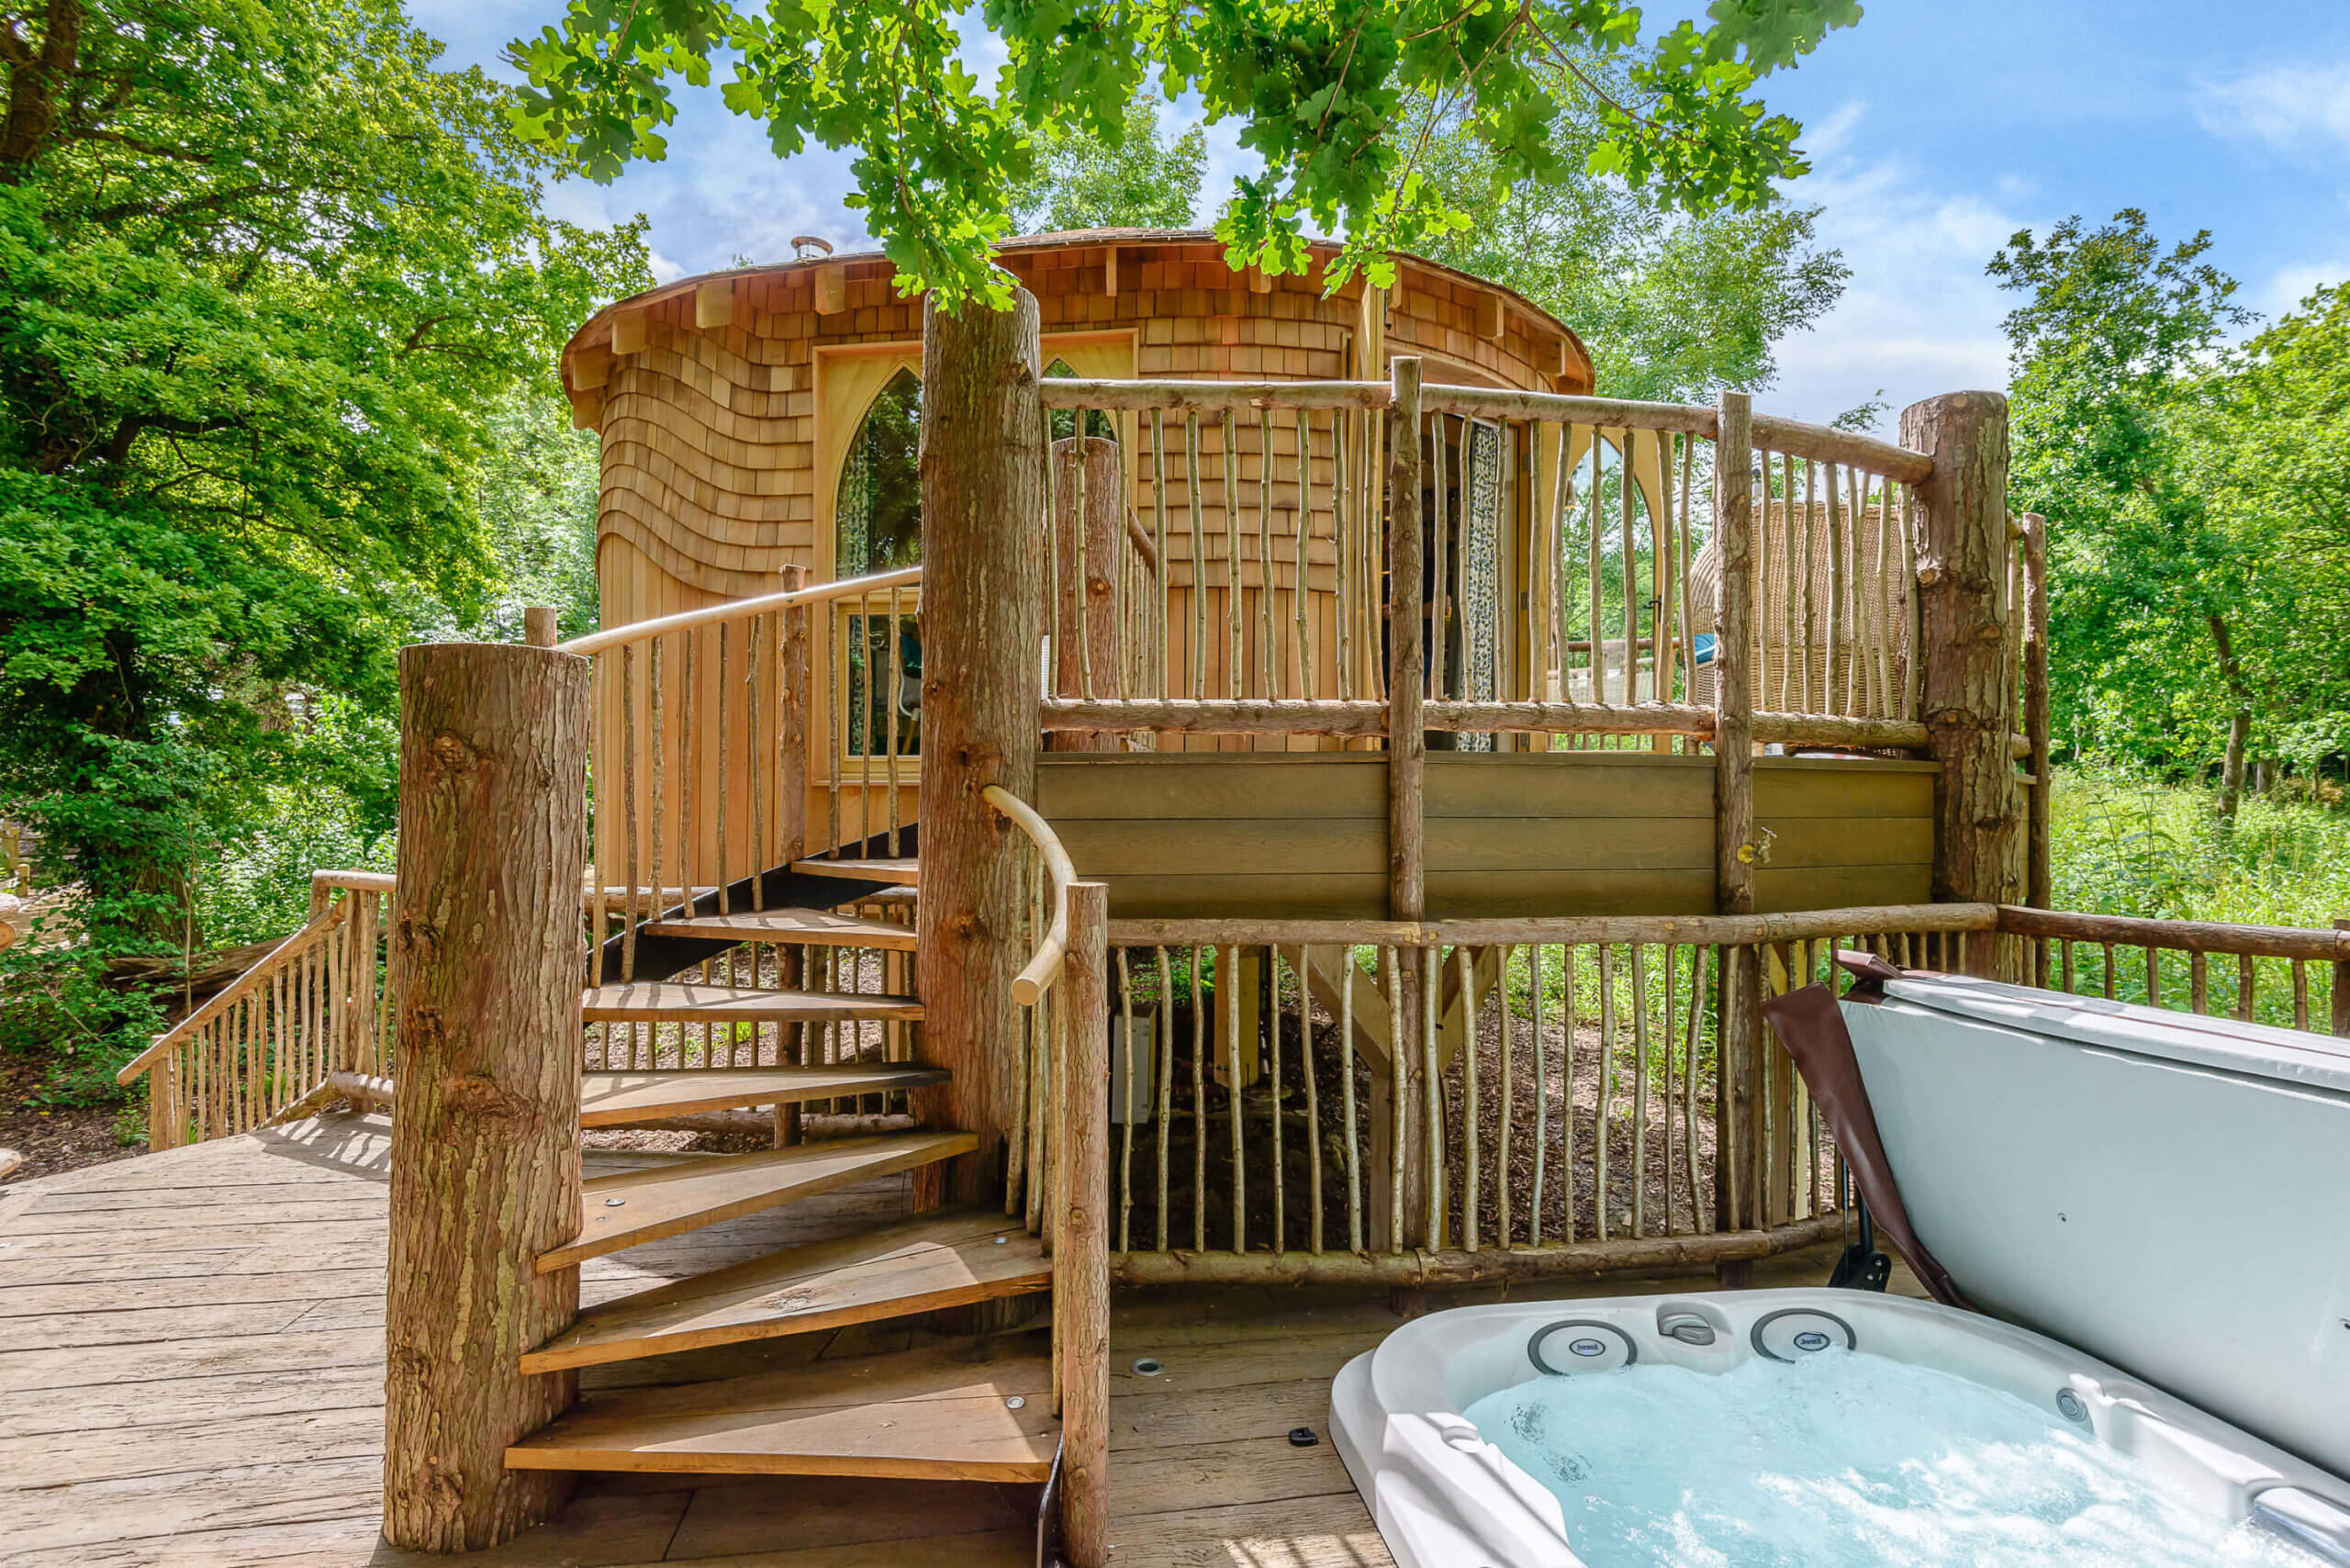 Exterior shot of the treehouse at Woodside Bay